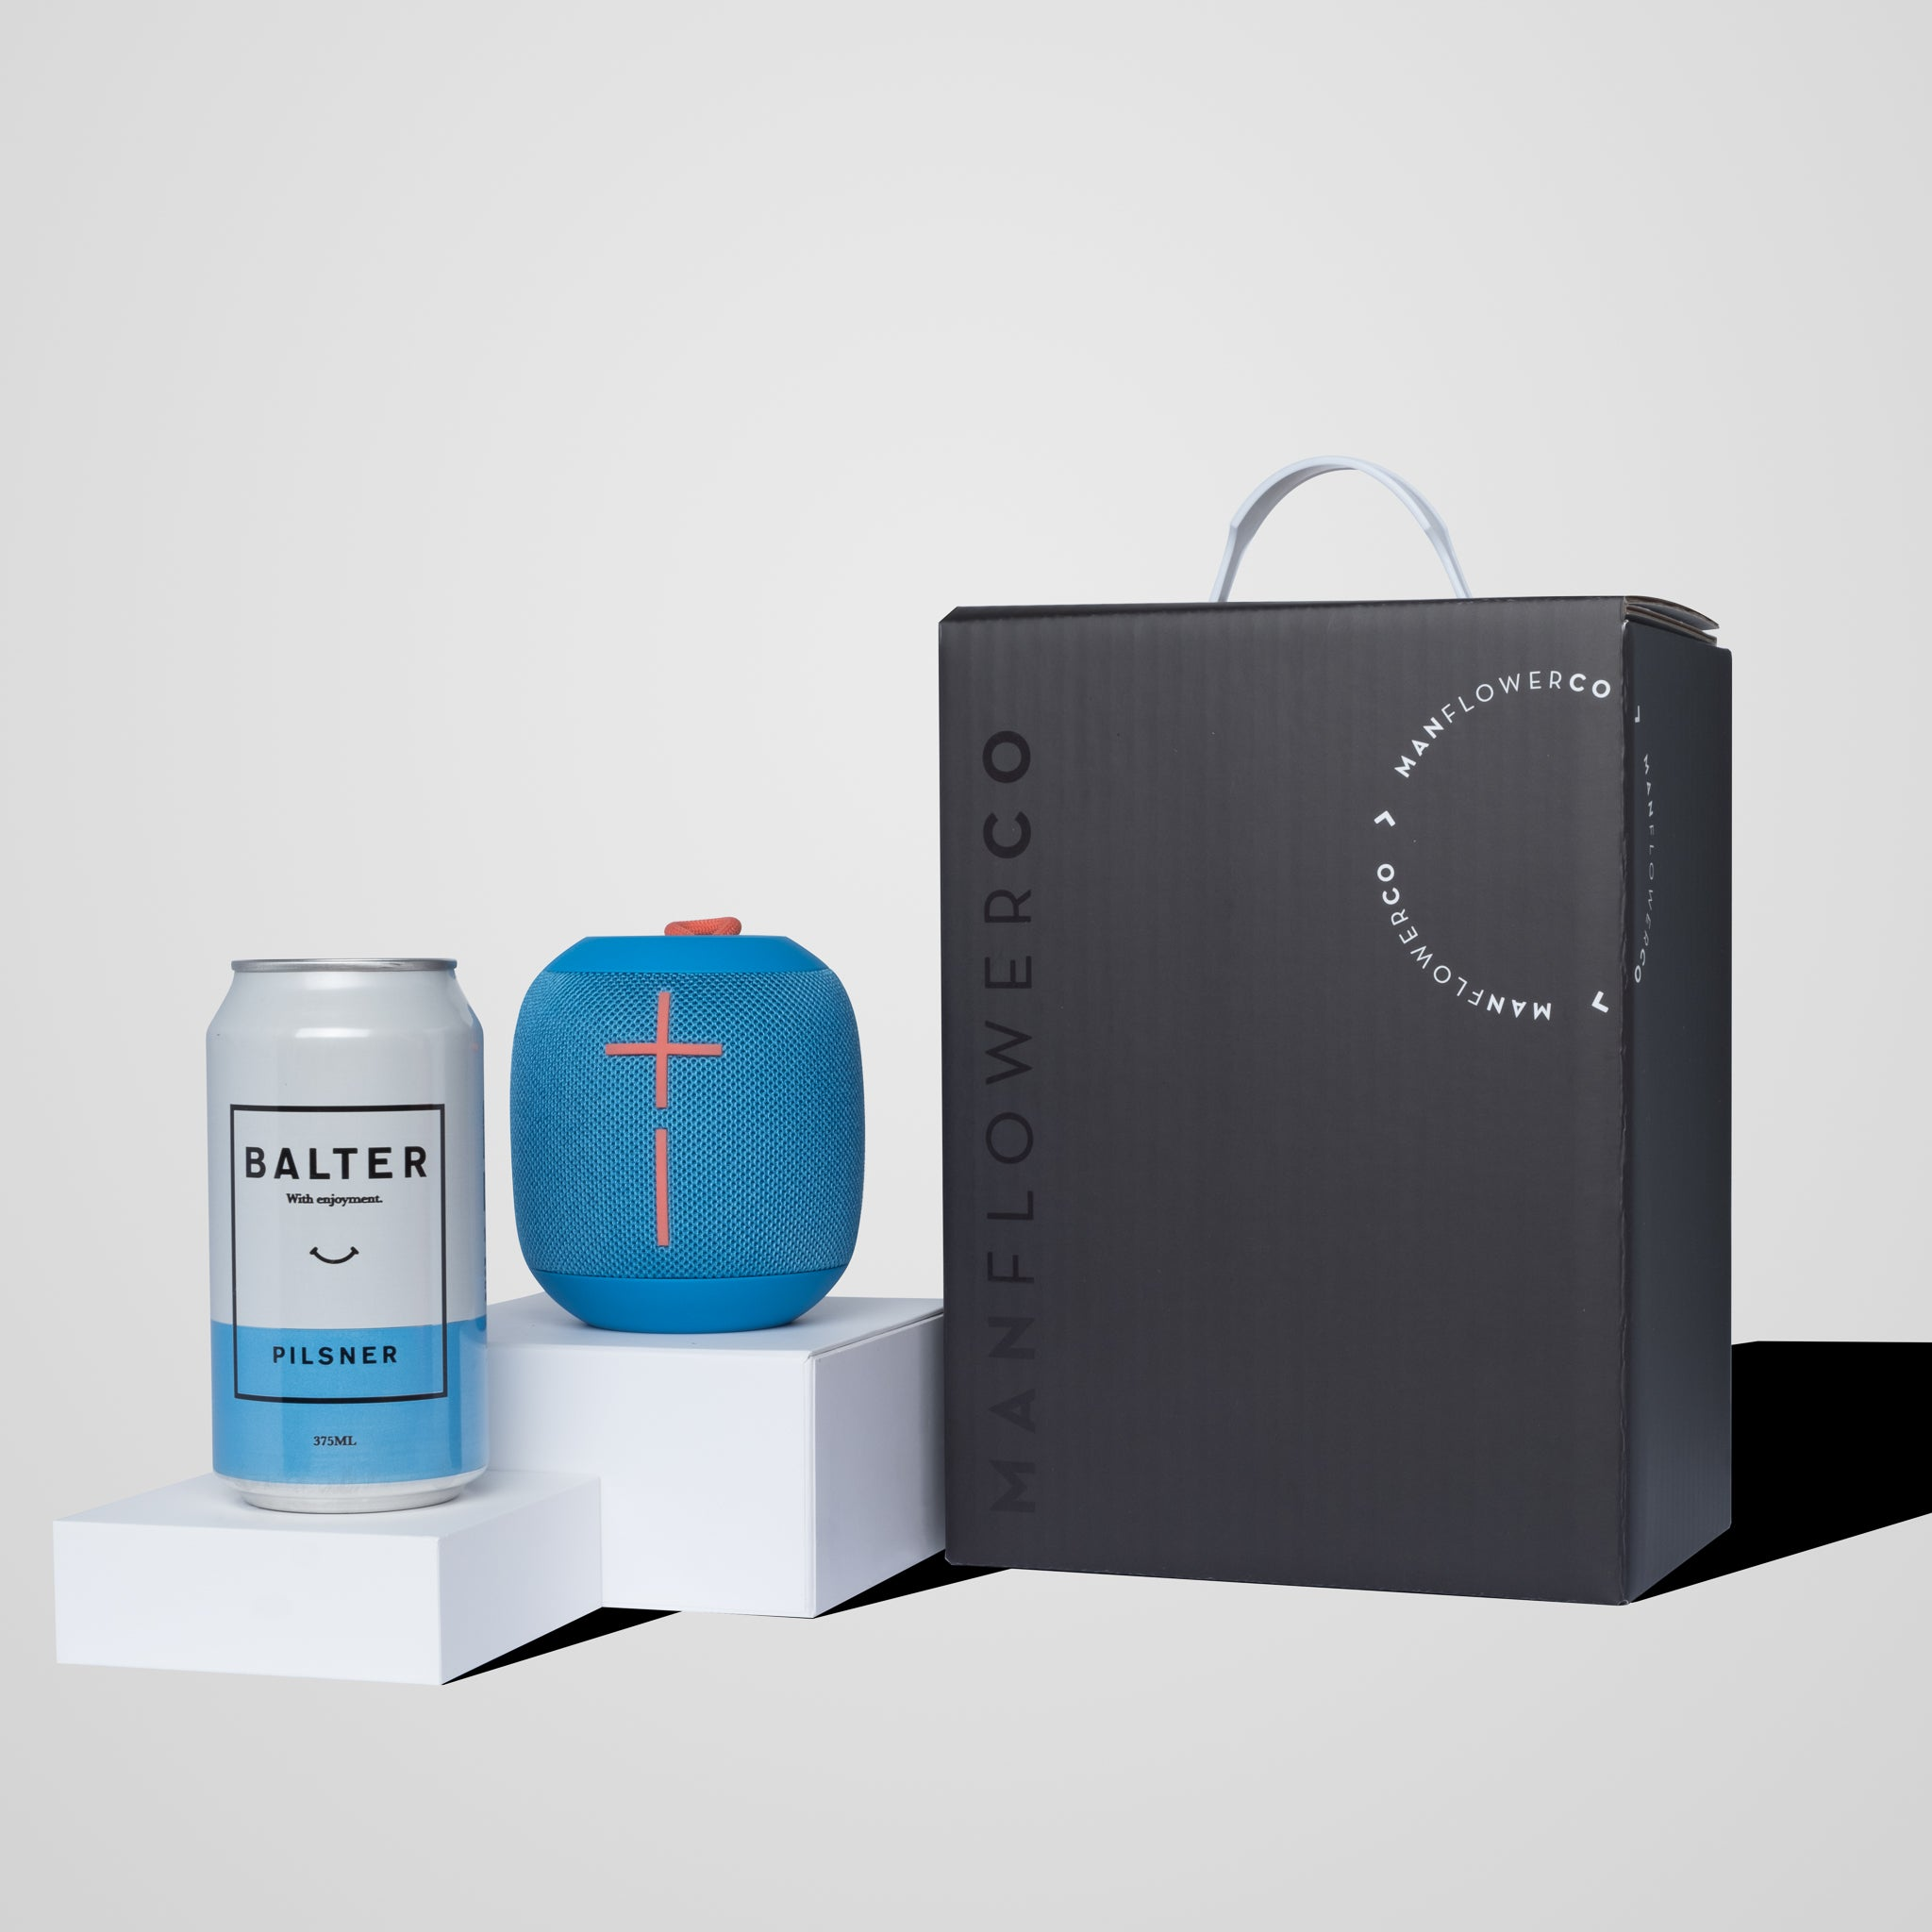 Image of Manflower Co gift box featuring Ultimate Ears Wonderboom.